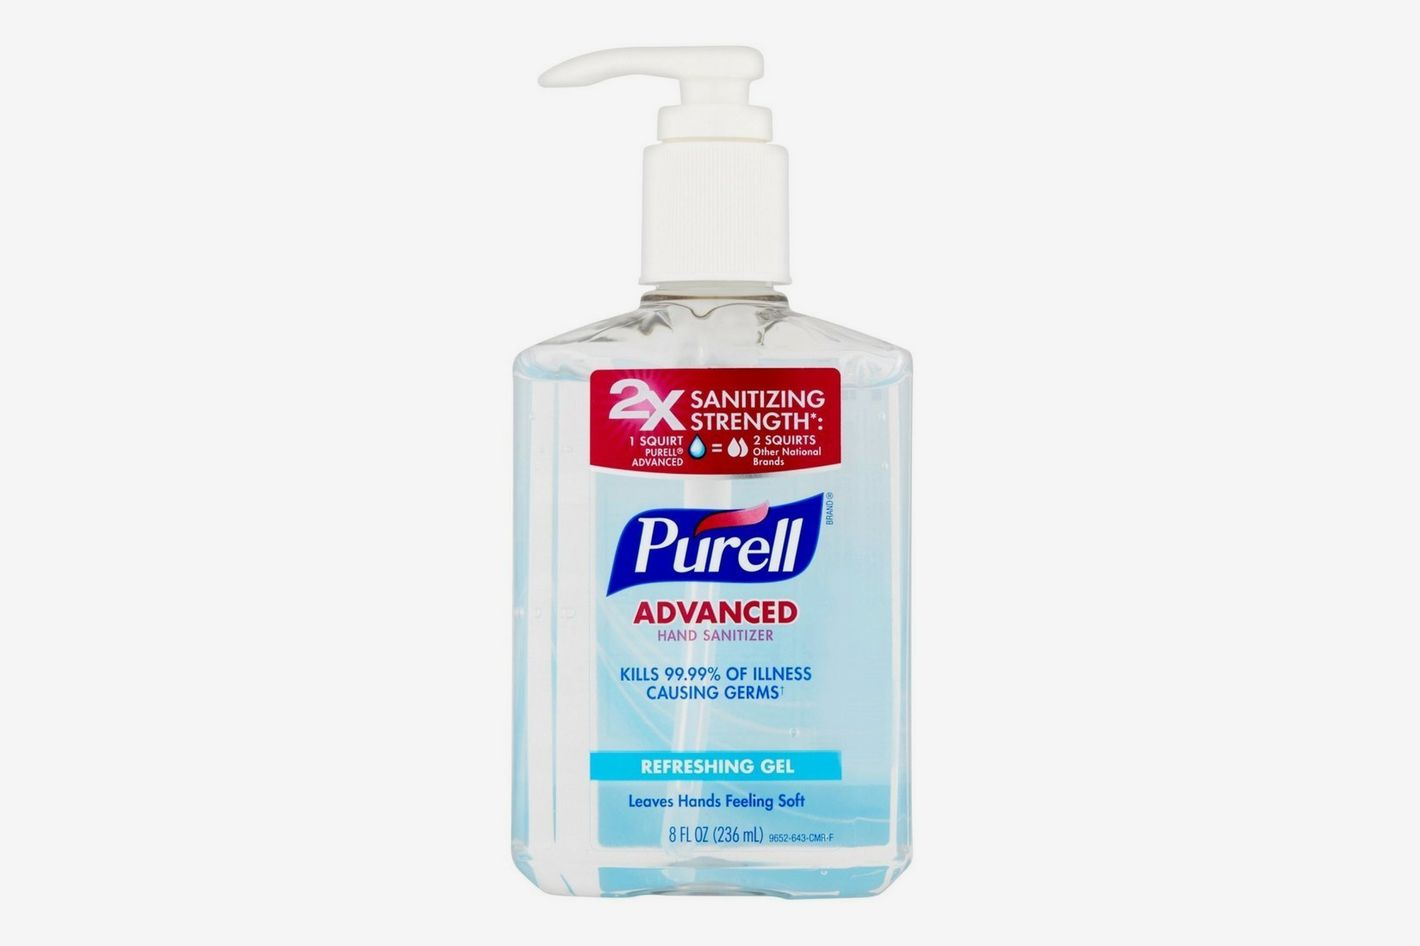 PURELL Advanced Hand Sanitizer Refreshing Gel, 2 Pack